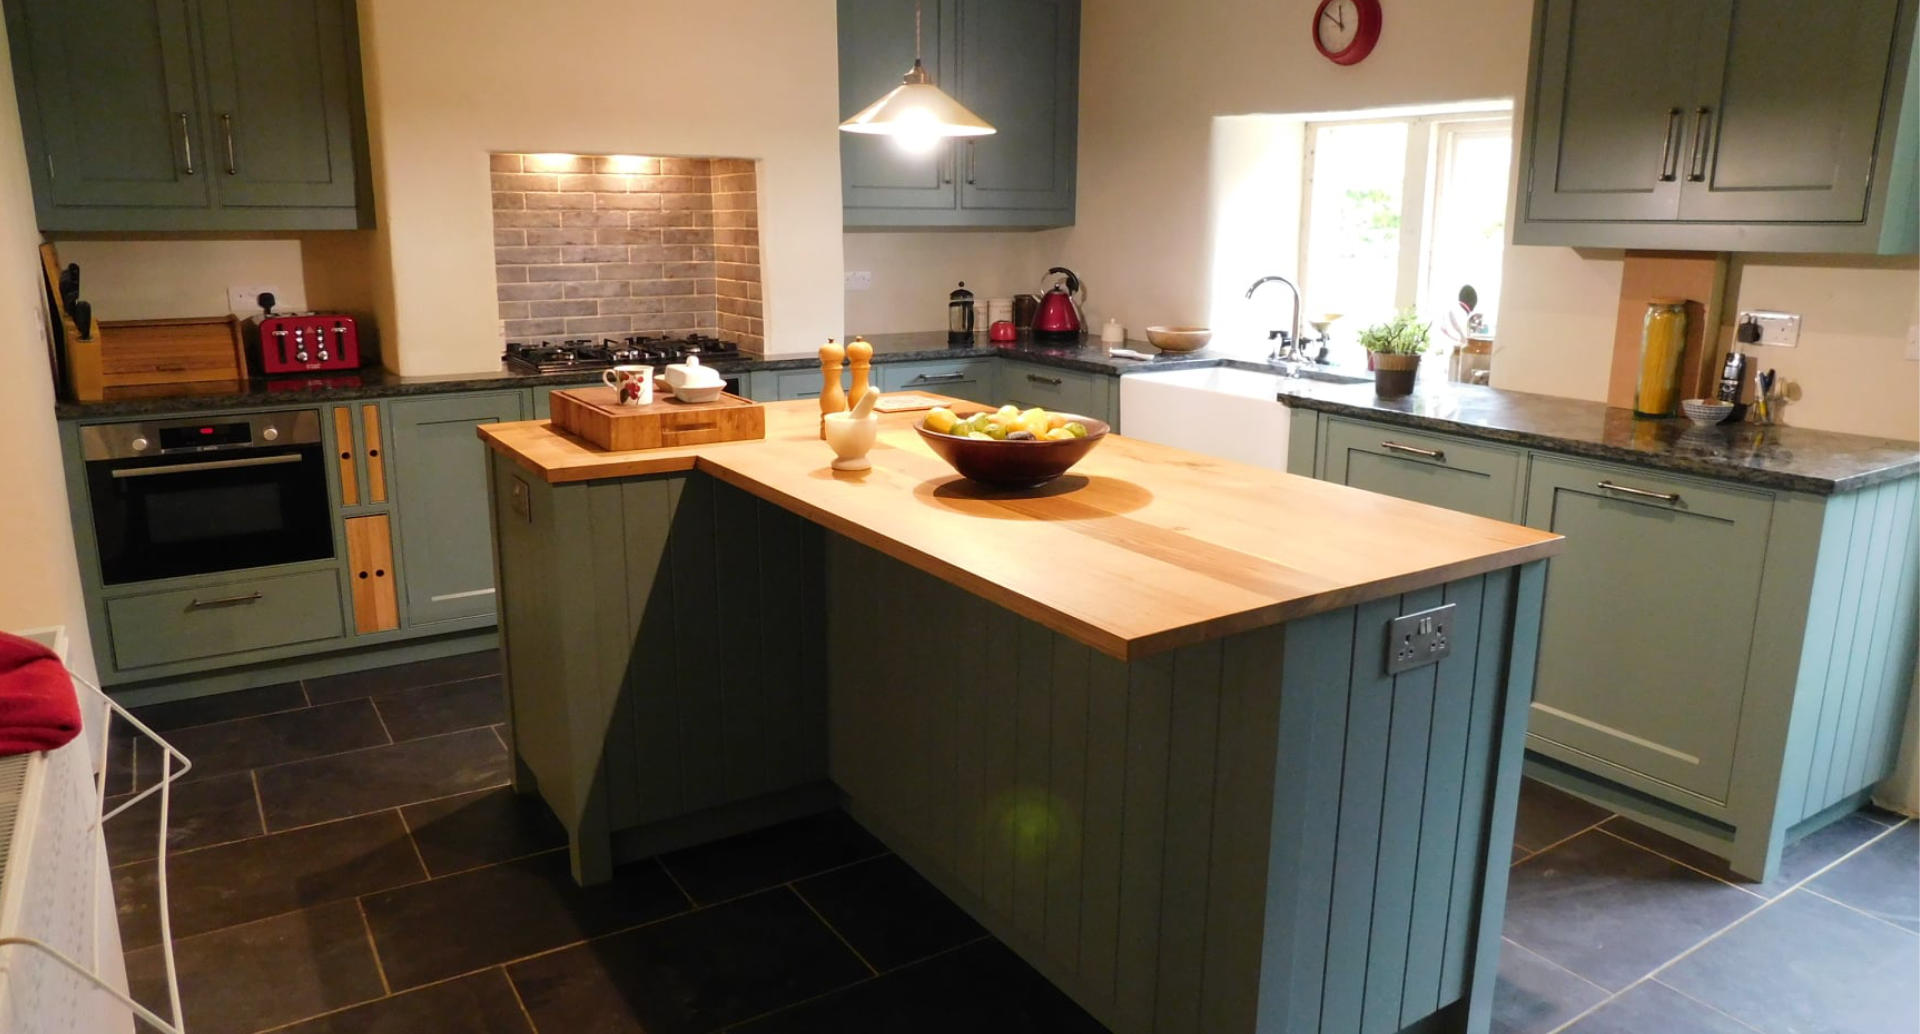 A wide view of a beautiful fitted kitchen.